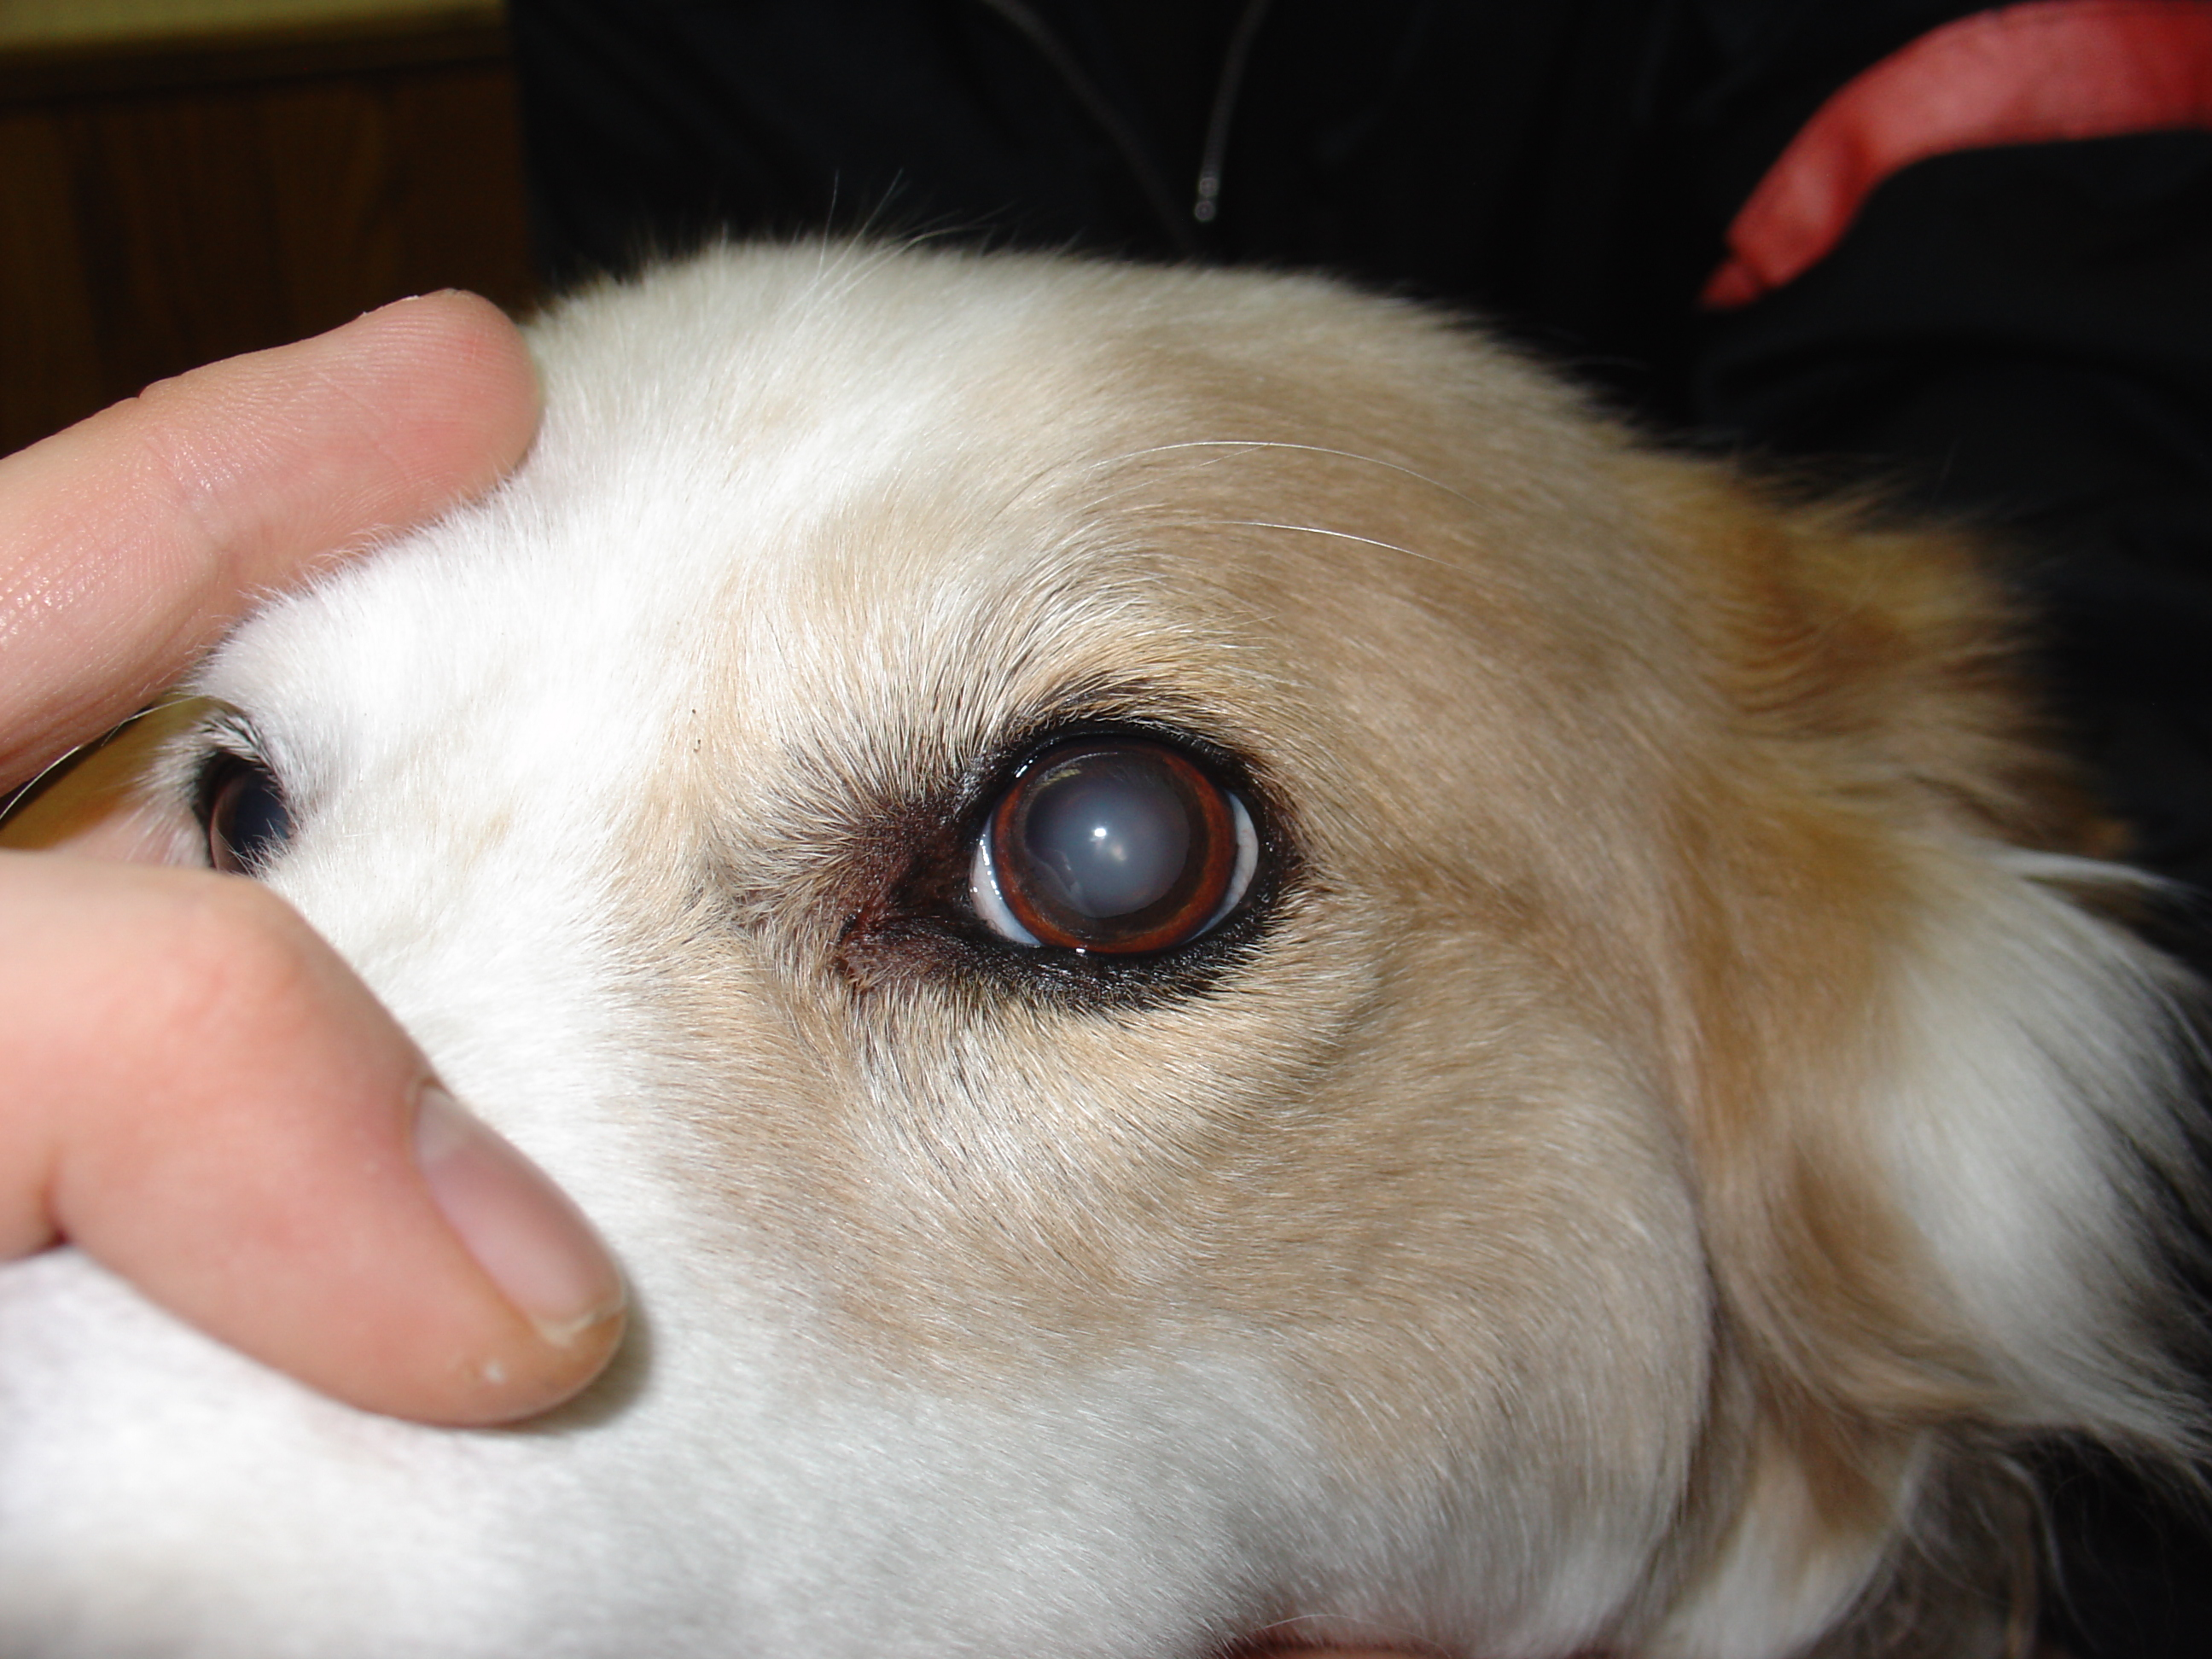 Dogs Eye Is Blood Red